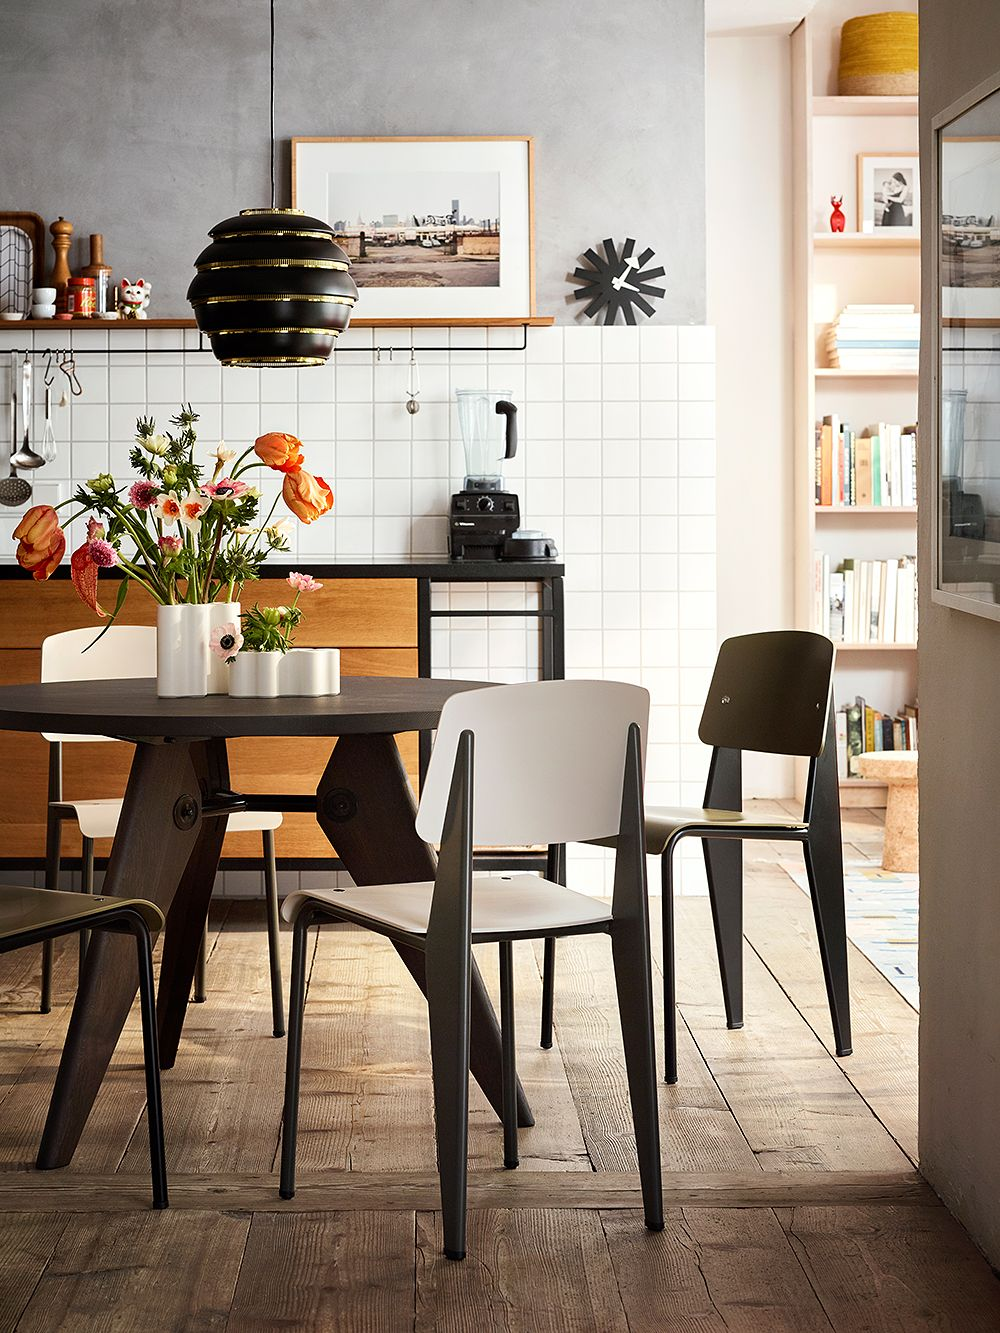 Vitra's Standard chairs, designed by Jean Prouvé, gathered around a dining table